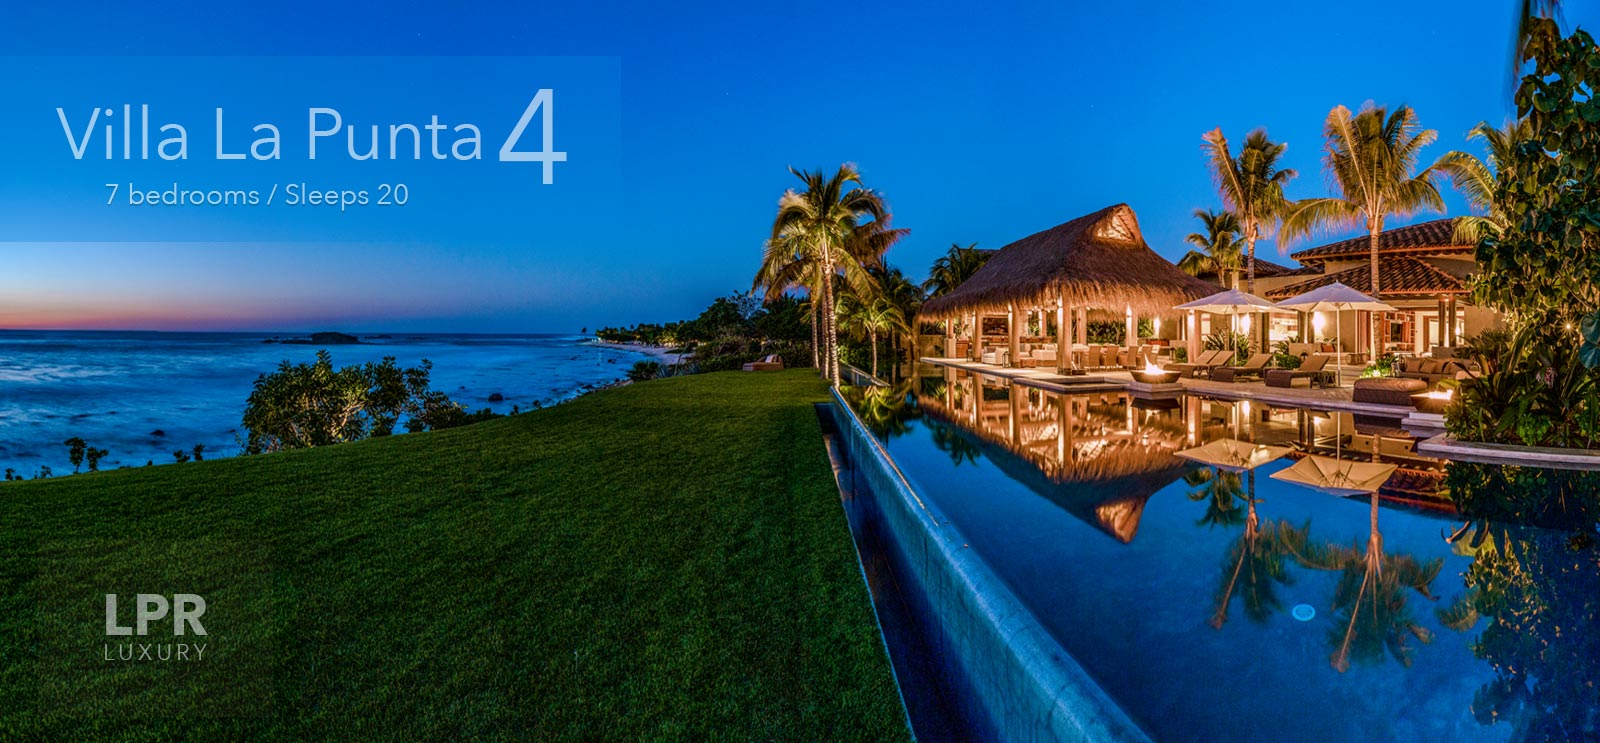 Villa La Punta 4 - Luxury Vacation Rental VIlla at La Punta Estates - Punta Mita Resort Mexico